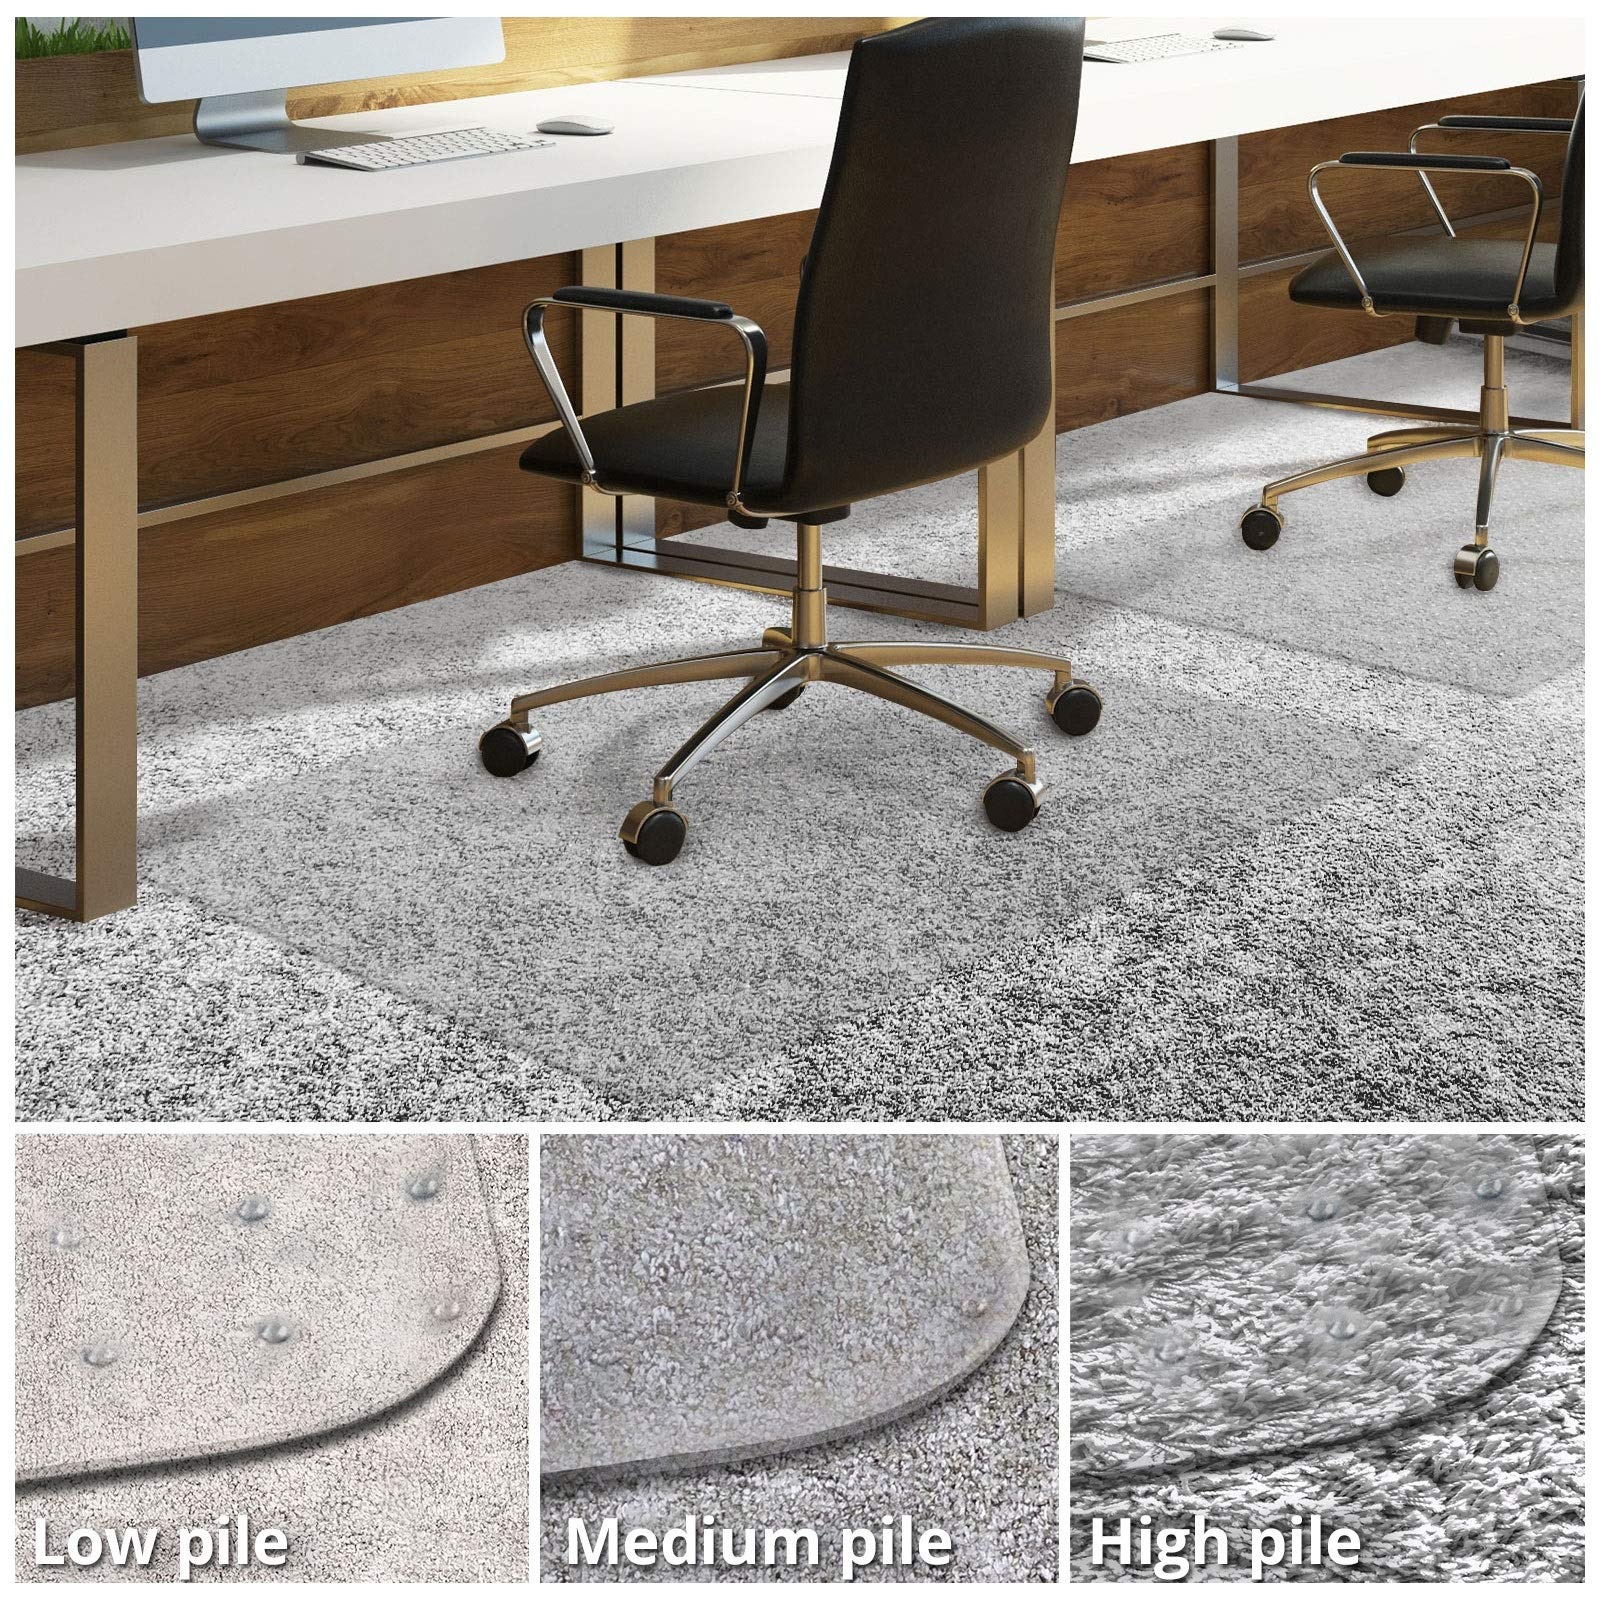 Office Chair Mat for Carpeted Floors | Desk Chair Mat for Carpet | Clear PVC Mat in Different Thicknesses and Sizes for Every Pile Type | High-Pile 48''x52'' with Lip by OfficeMarshal